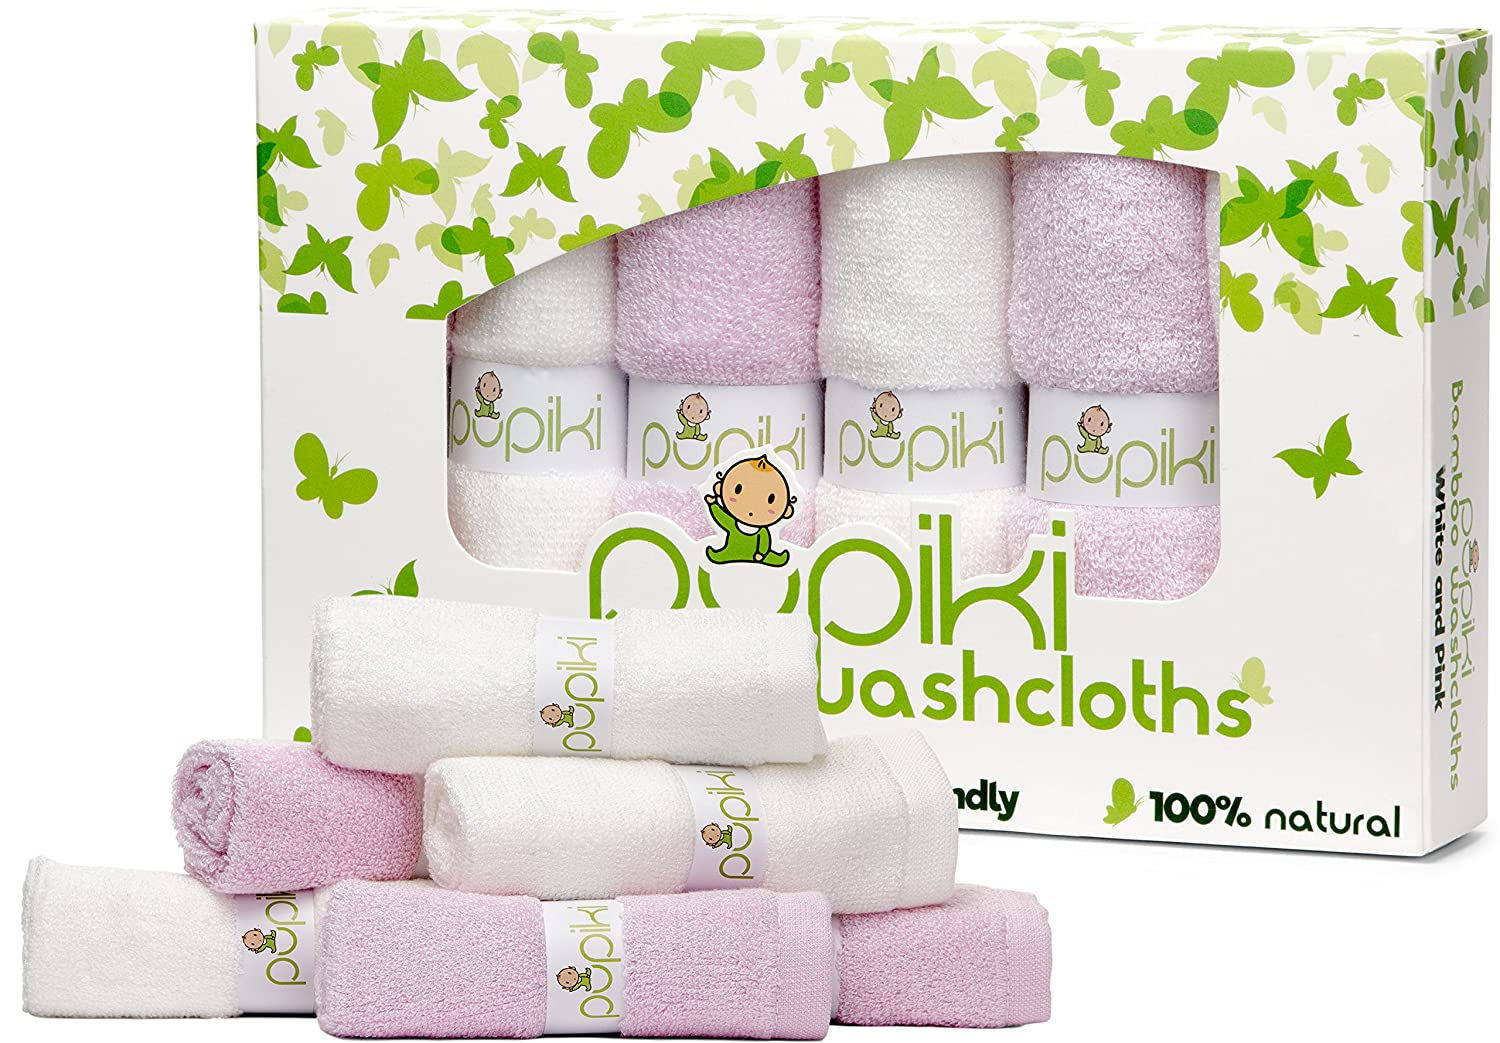 Pupiki Baby Washcloths: 6 Ultra-Soft 100% Organic Bamboo Baby Washcloth + Wash Bag Hypoallergenic Face Towels Extra-Absorbent 10X10 Newborn Towel for Boys & Girls Great Baby Shower Gift White & Green